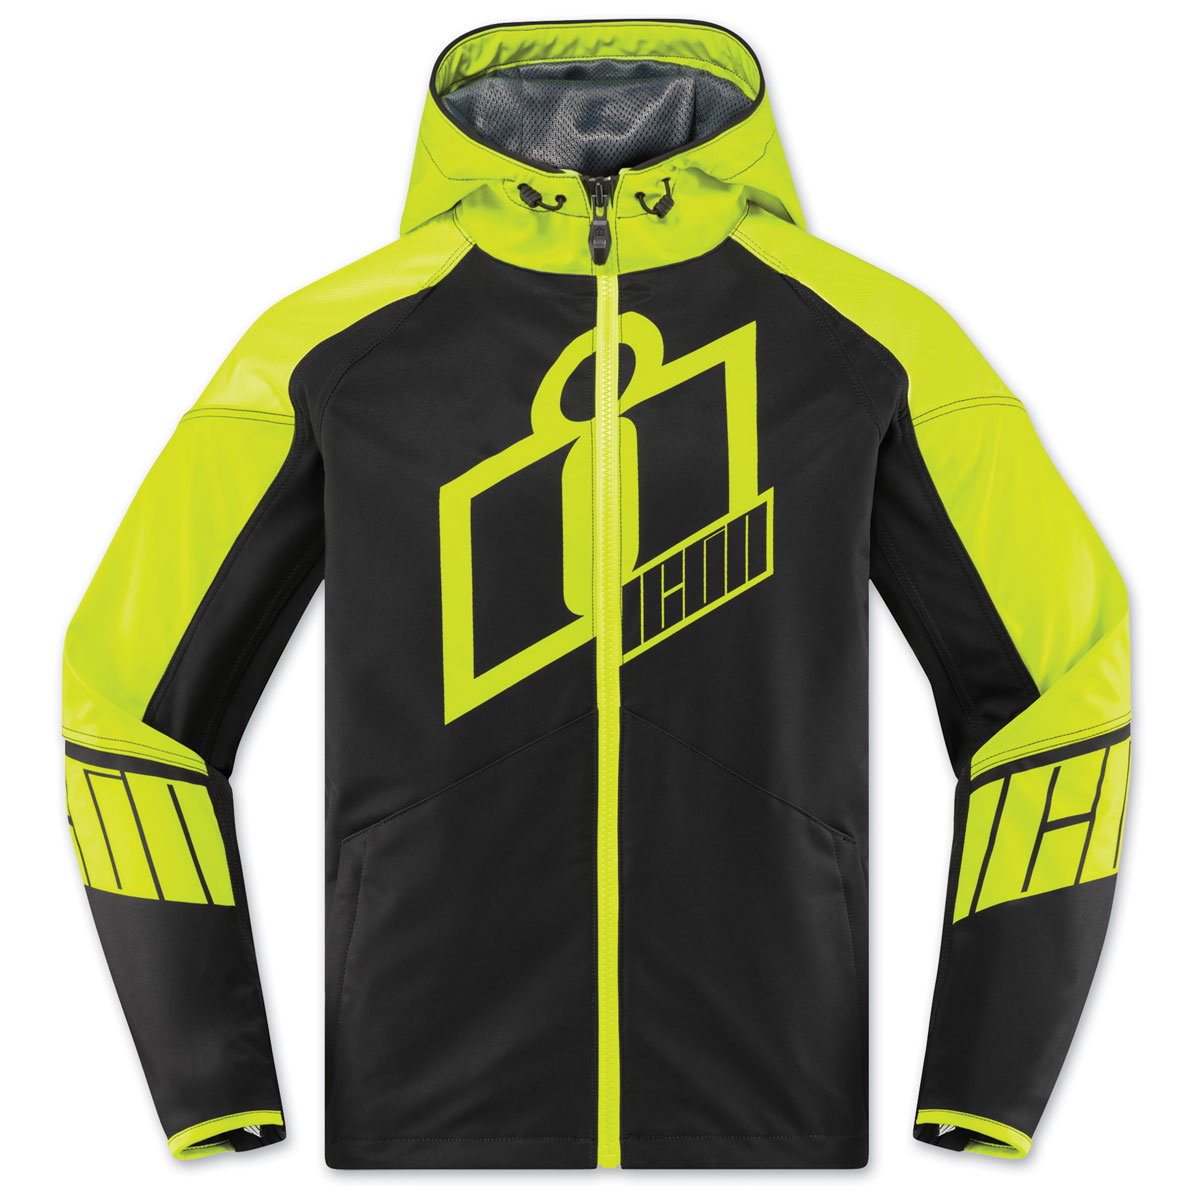 ICON Men's Merc Crusader Hi-Viz Jacket